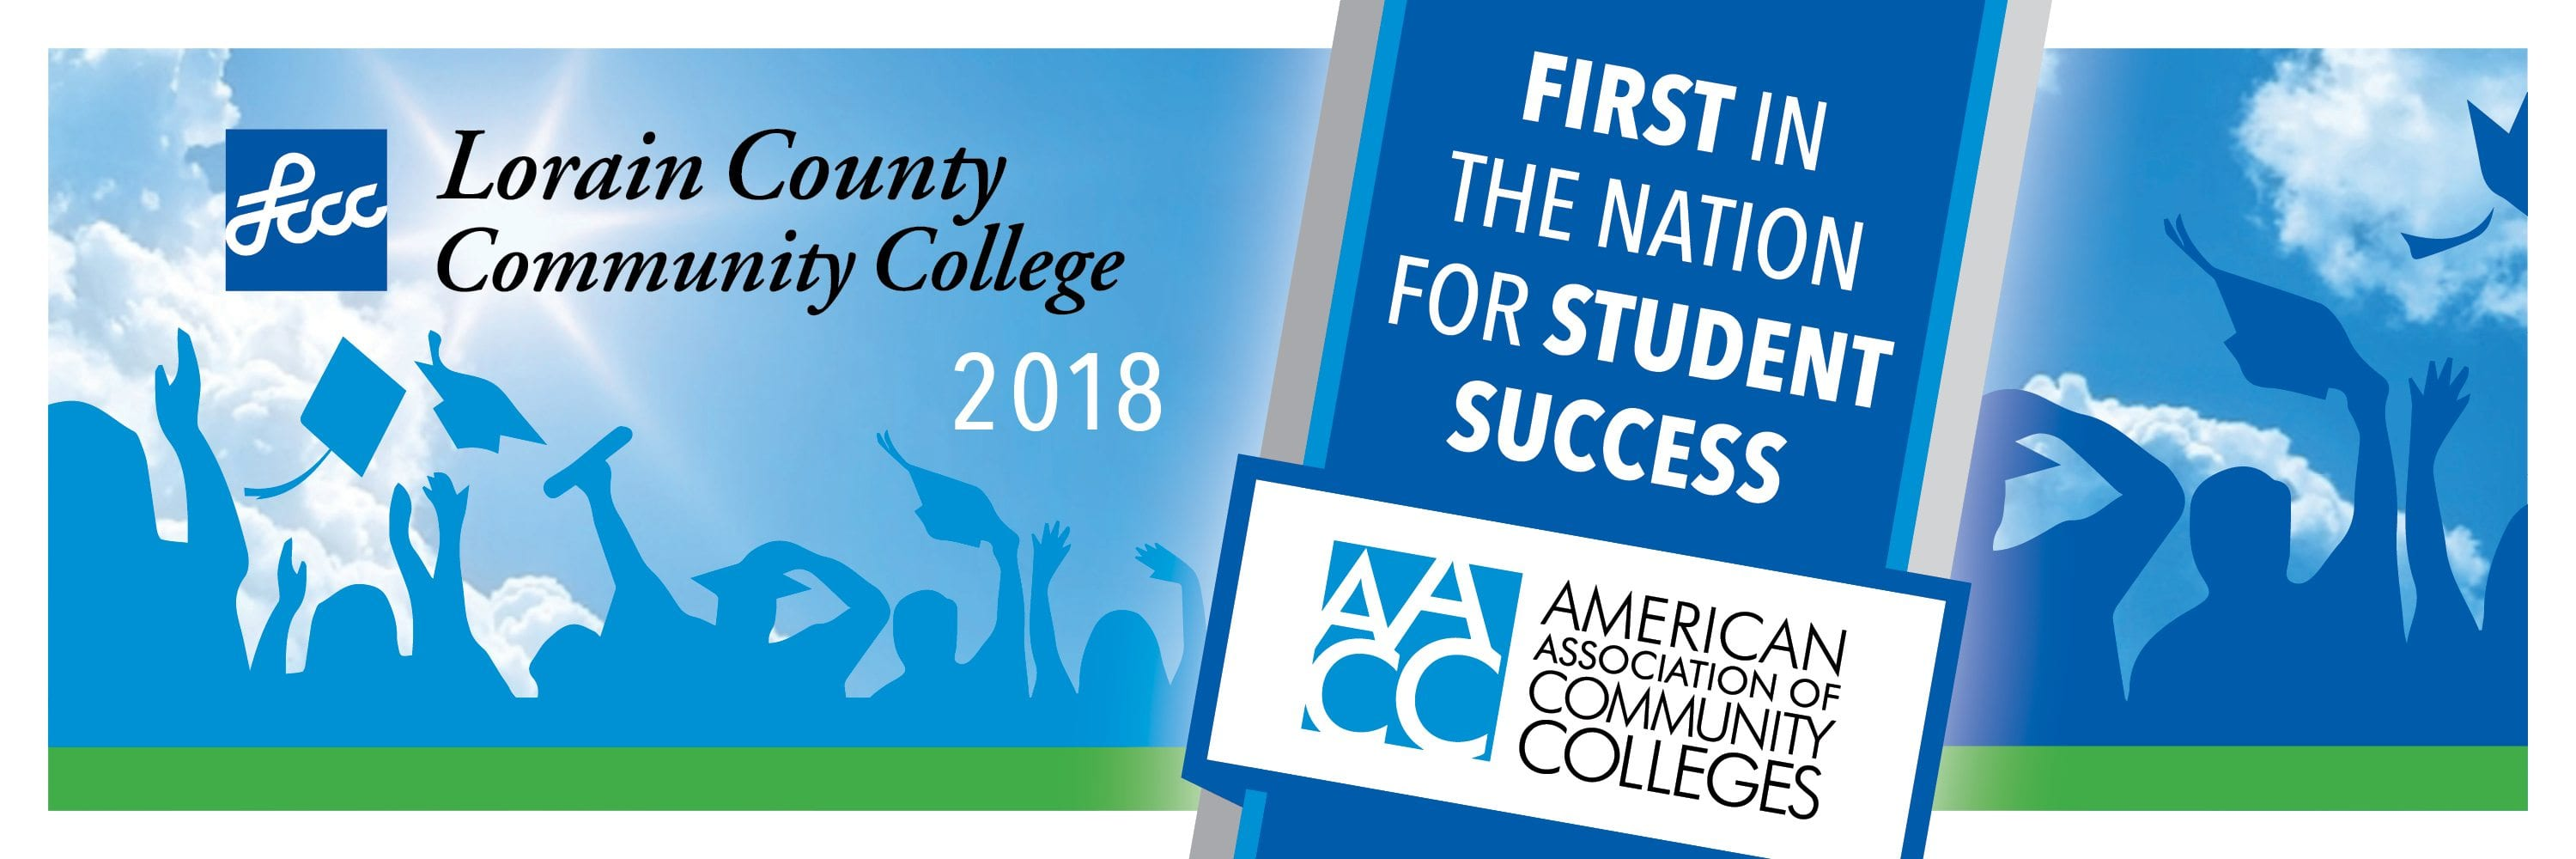 LCCC Named Top Community College for Student Success